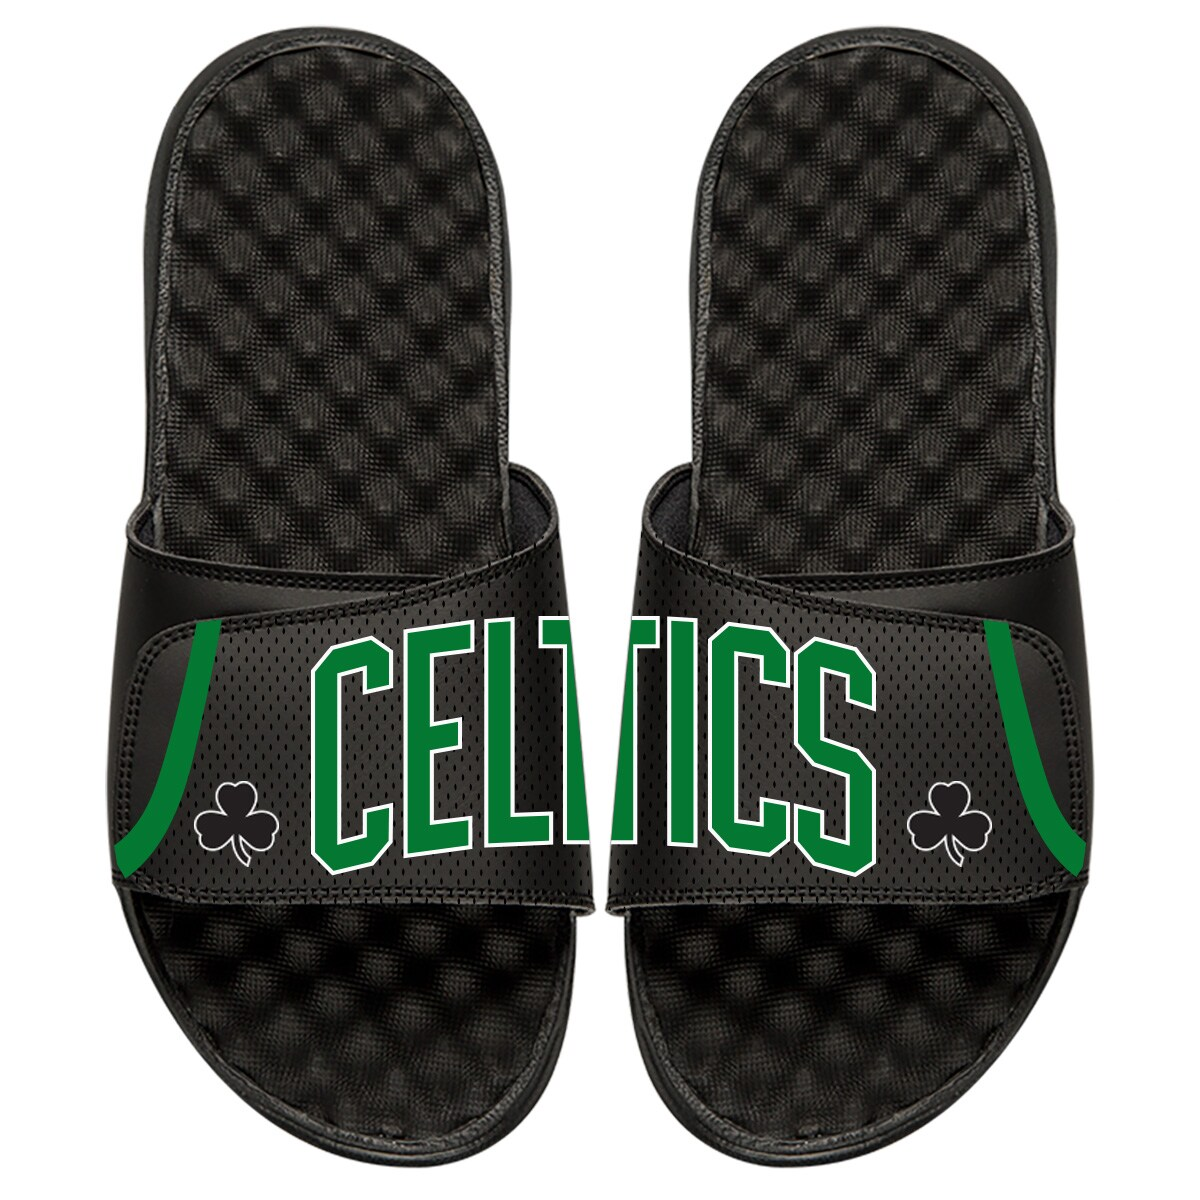 Boston Celtics ISlide Statement Jersey Split Slide Sandals - Black